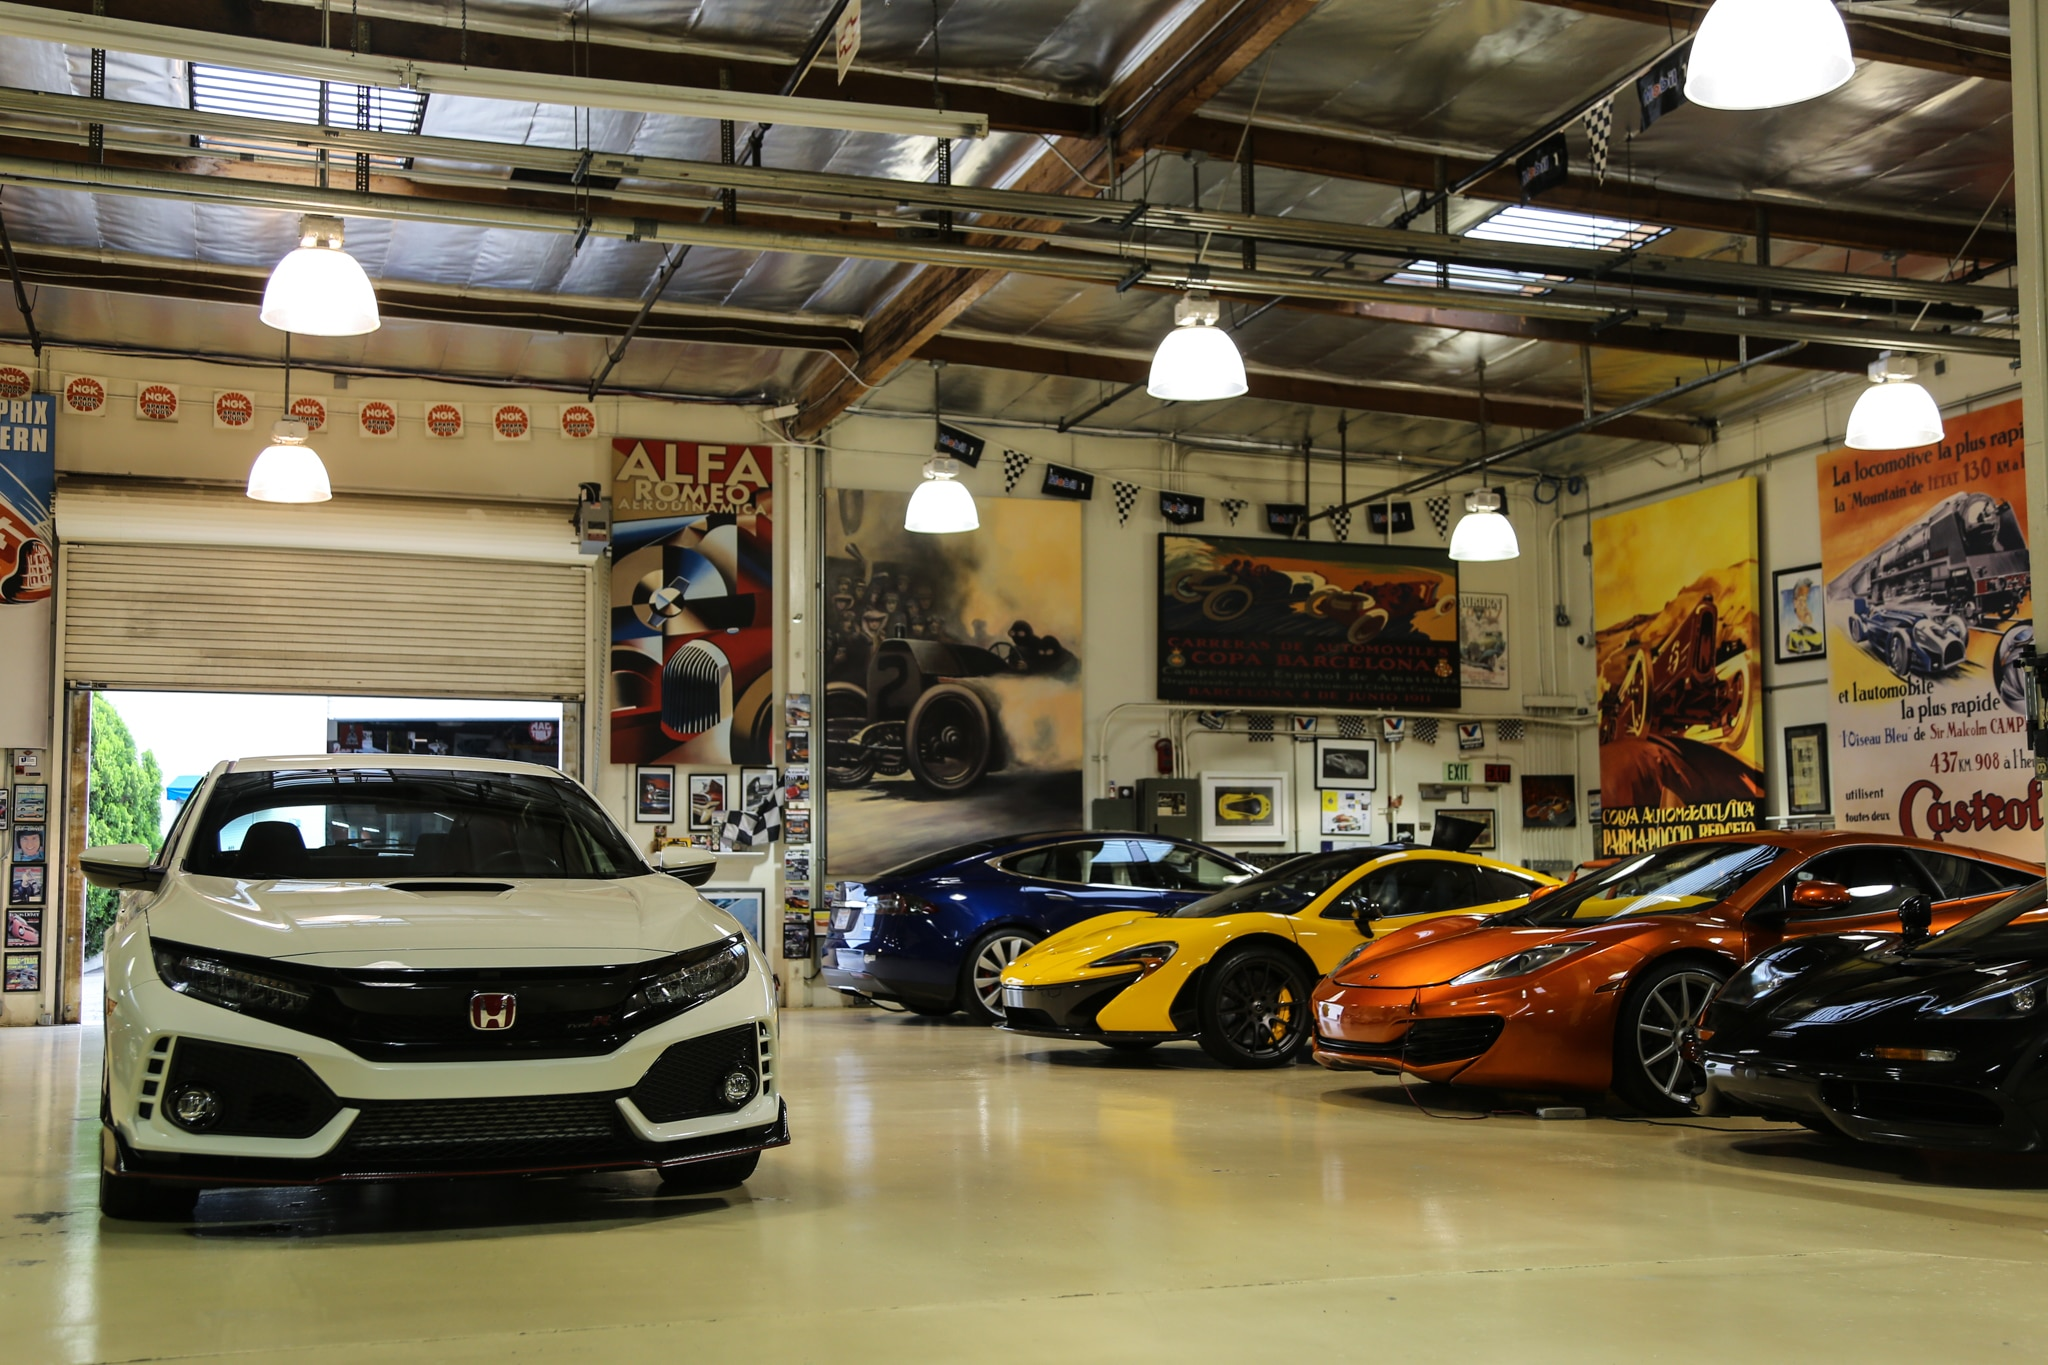 Jay Leno Garage : Our four seasons honda civic type r gets detailed at jay